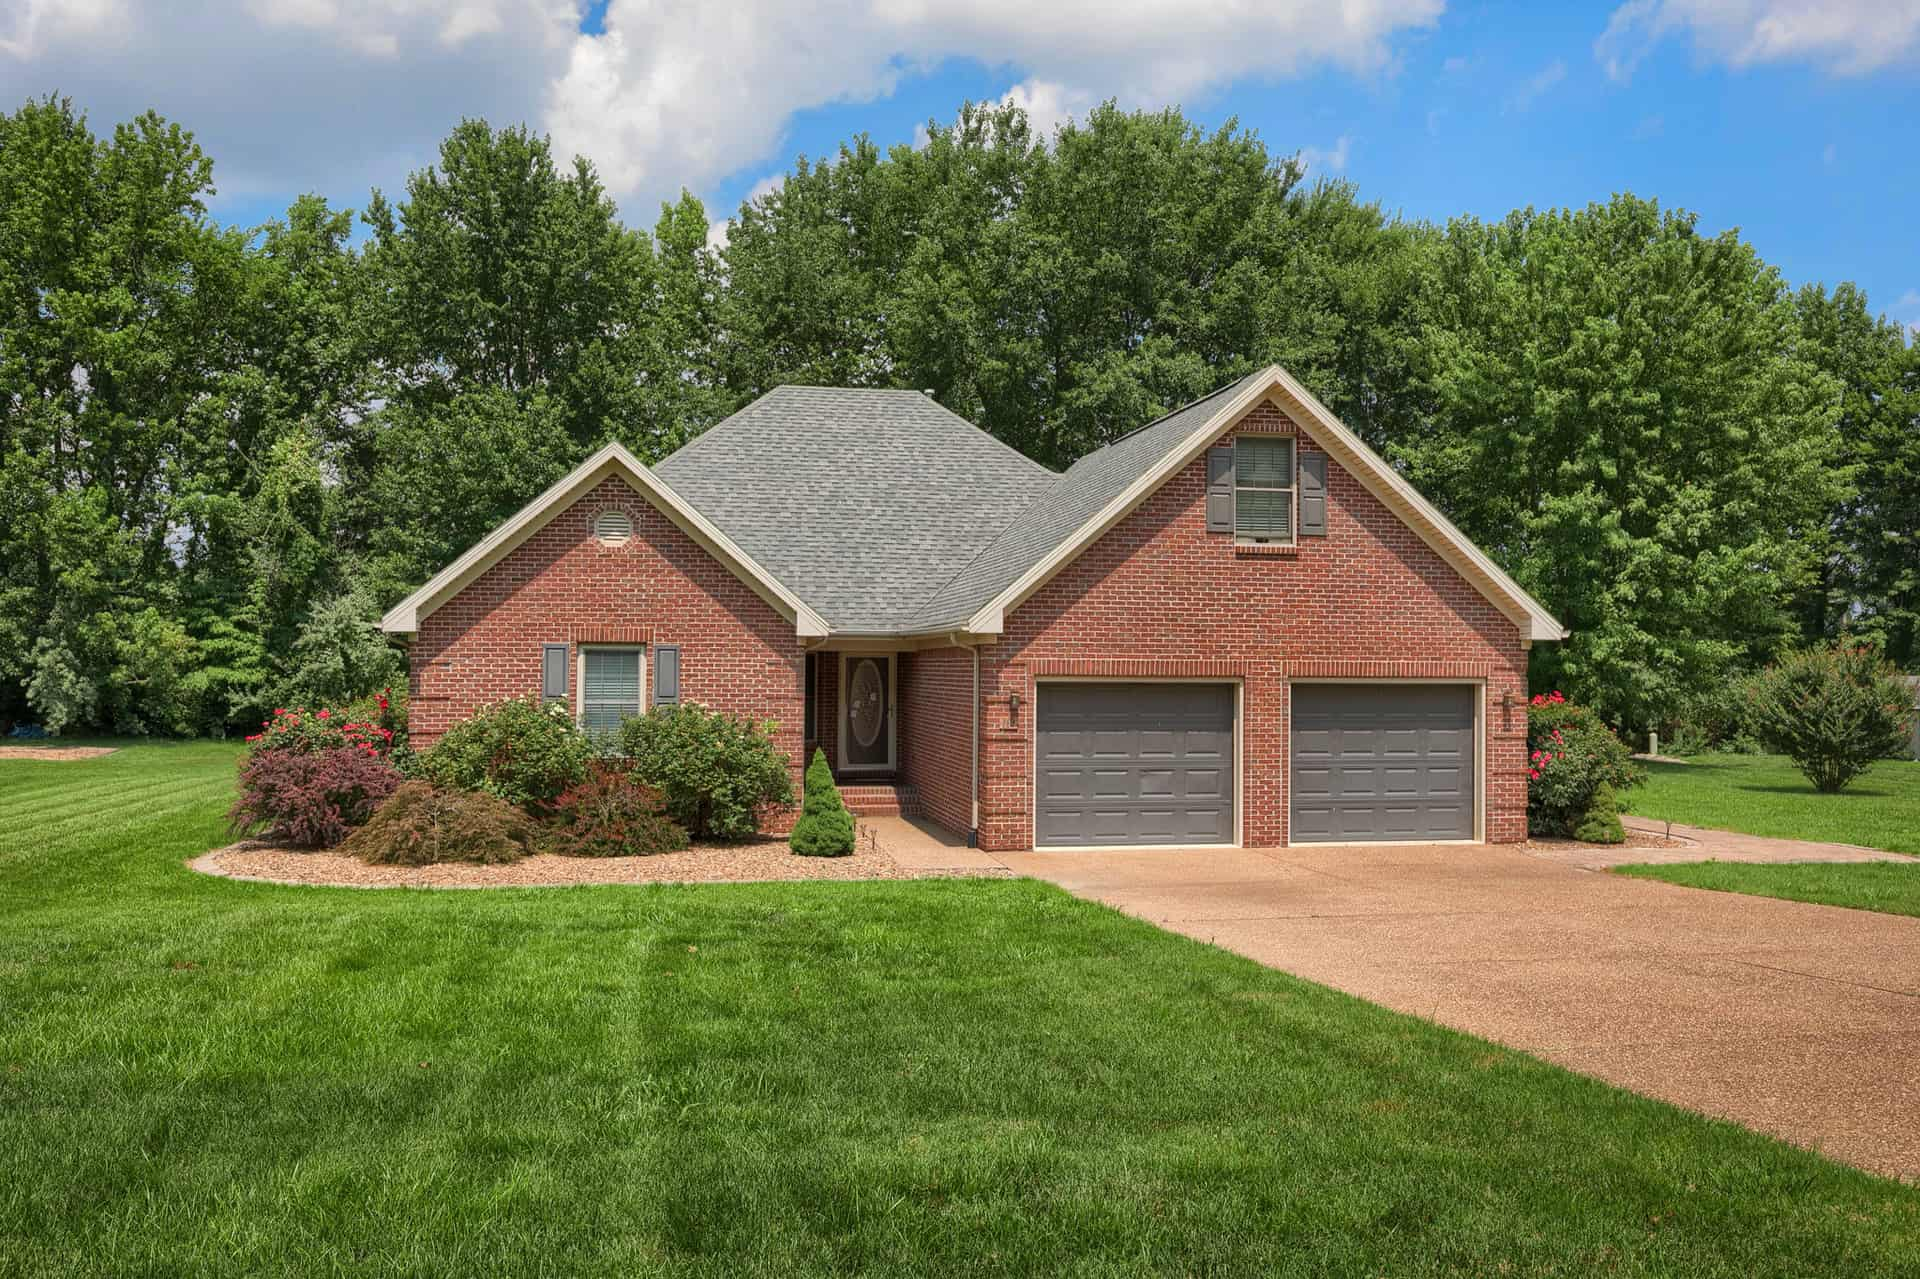 160 Windsong Dr., Hawesville, KY 42355